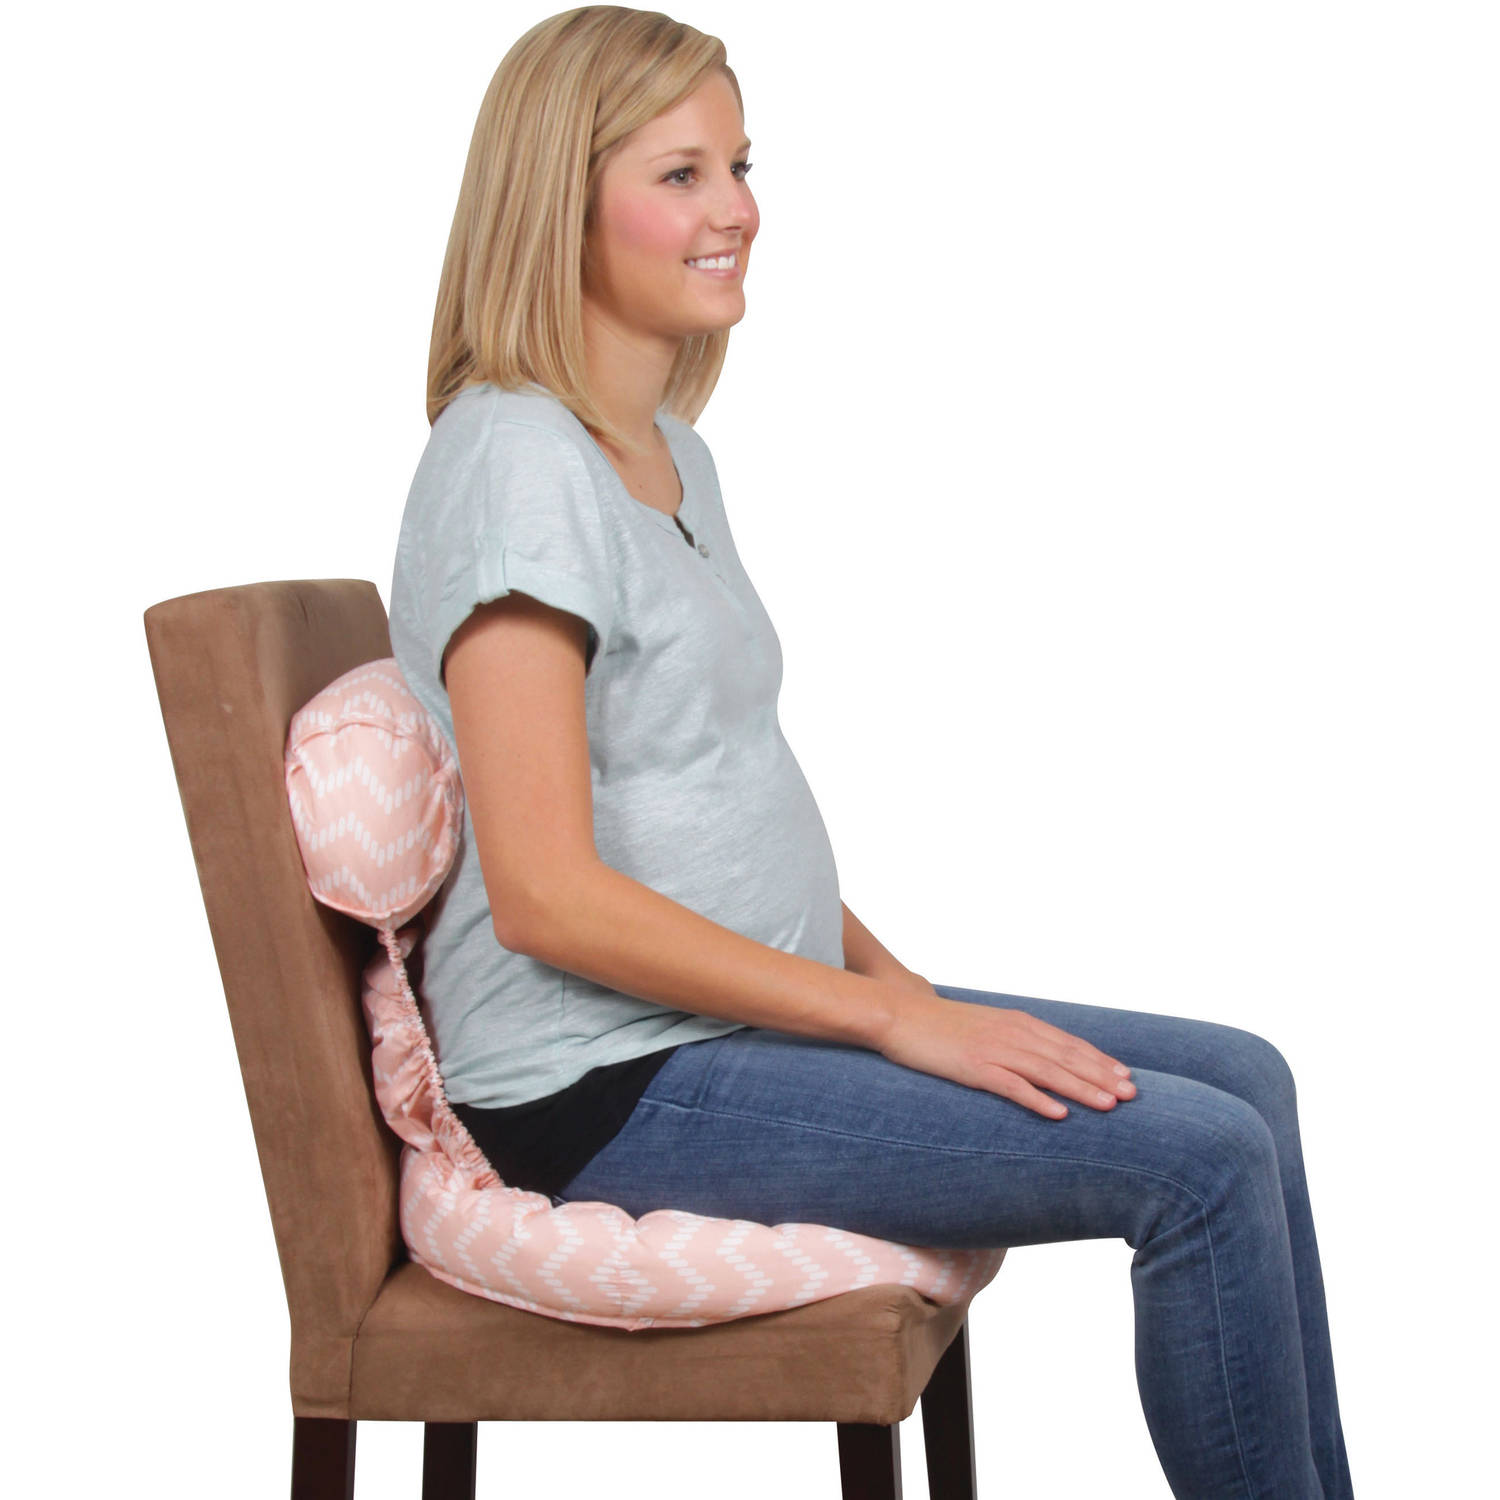 Leachco Tushion Cushion Maternity Soft Seat, Chevron Peach